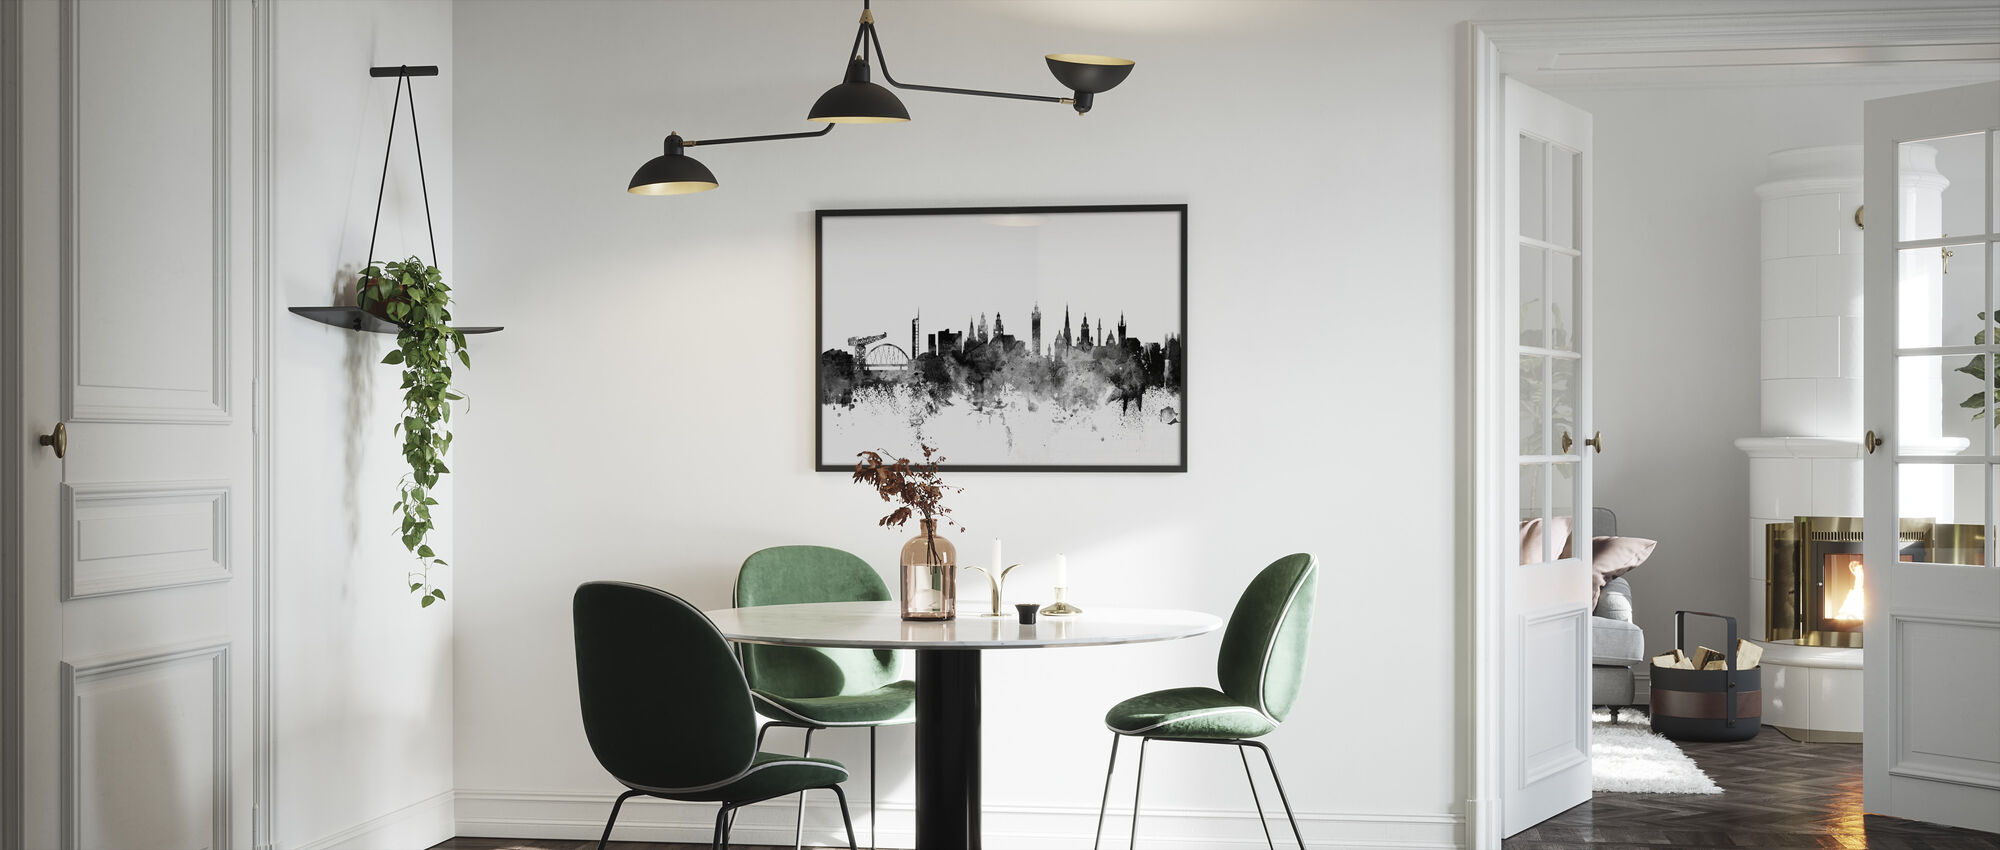 Glasgow Scotland Skyline Black - Framed print - Kitchen